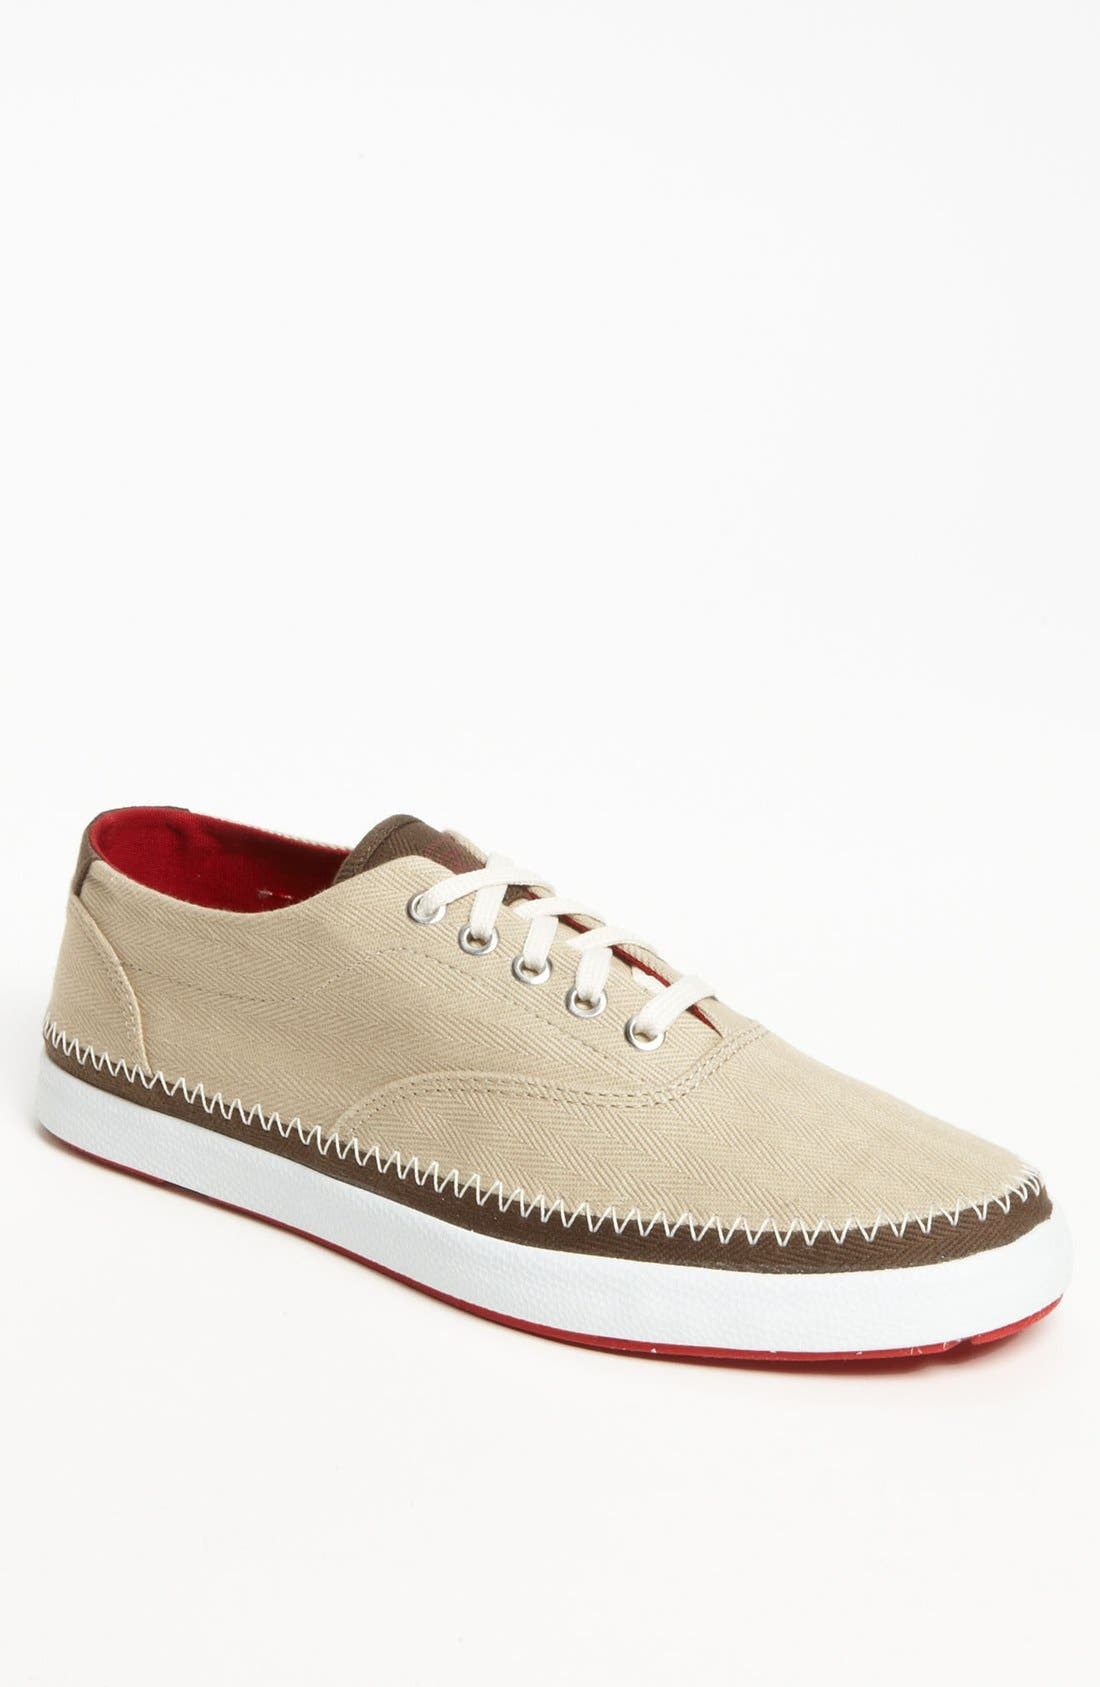 Alternate Image 1 Selected - Sperry Top-Sider® 'Drifter CVO' Sneaker (Men)